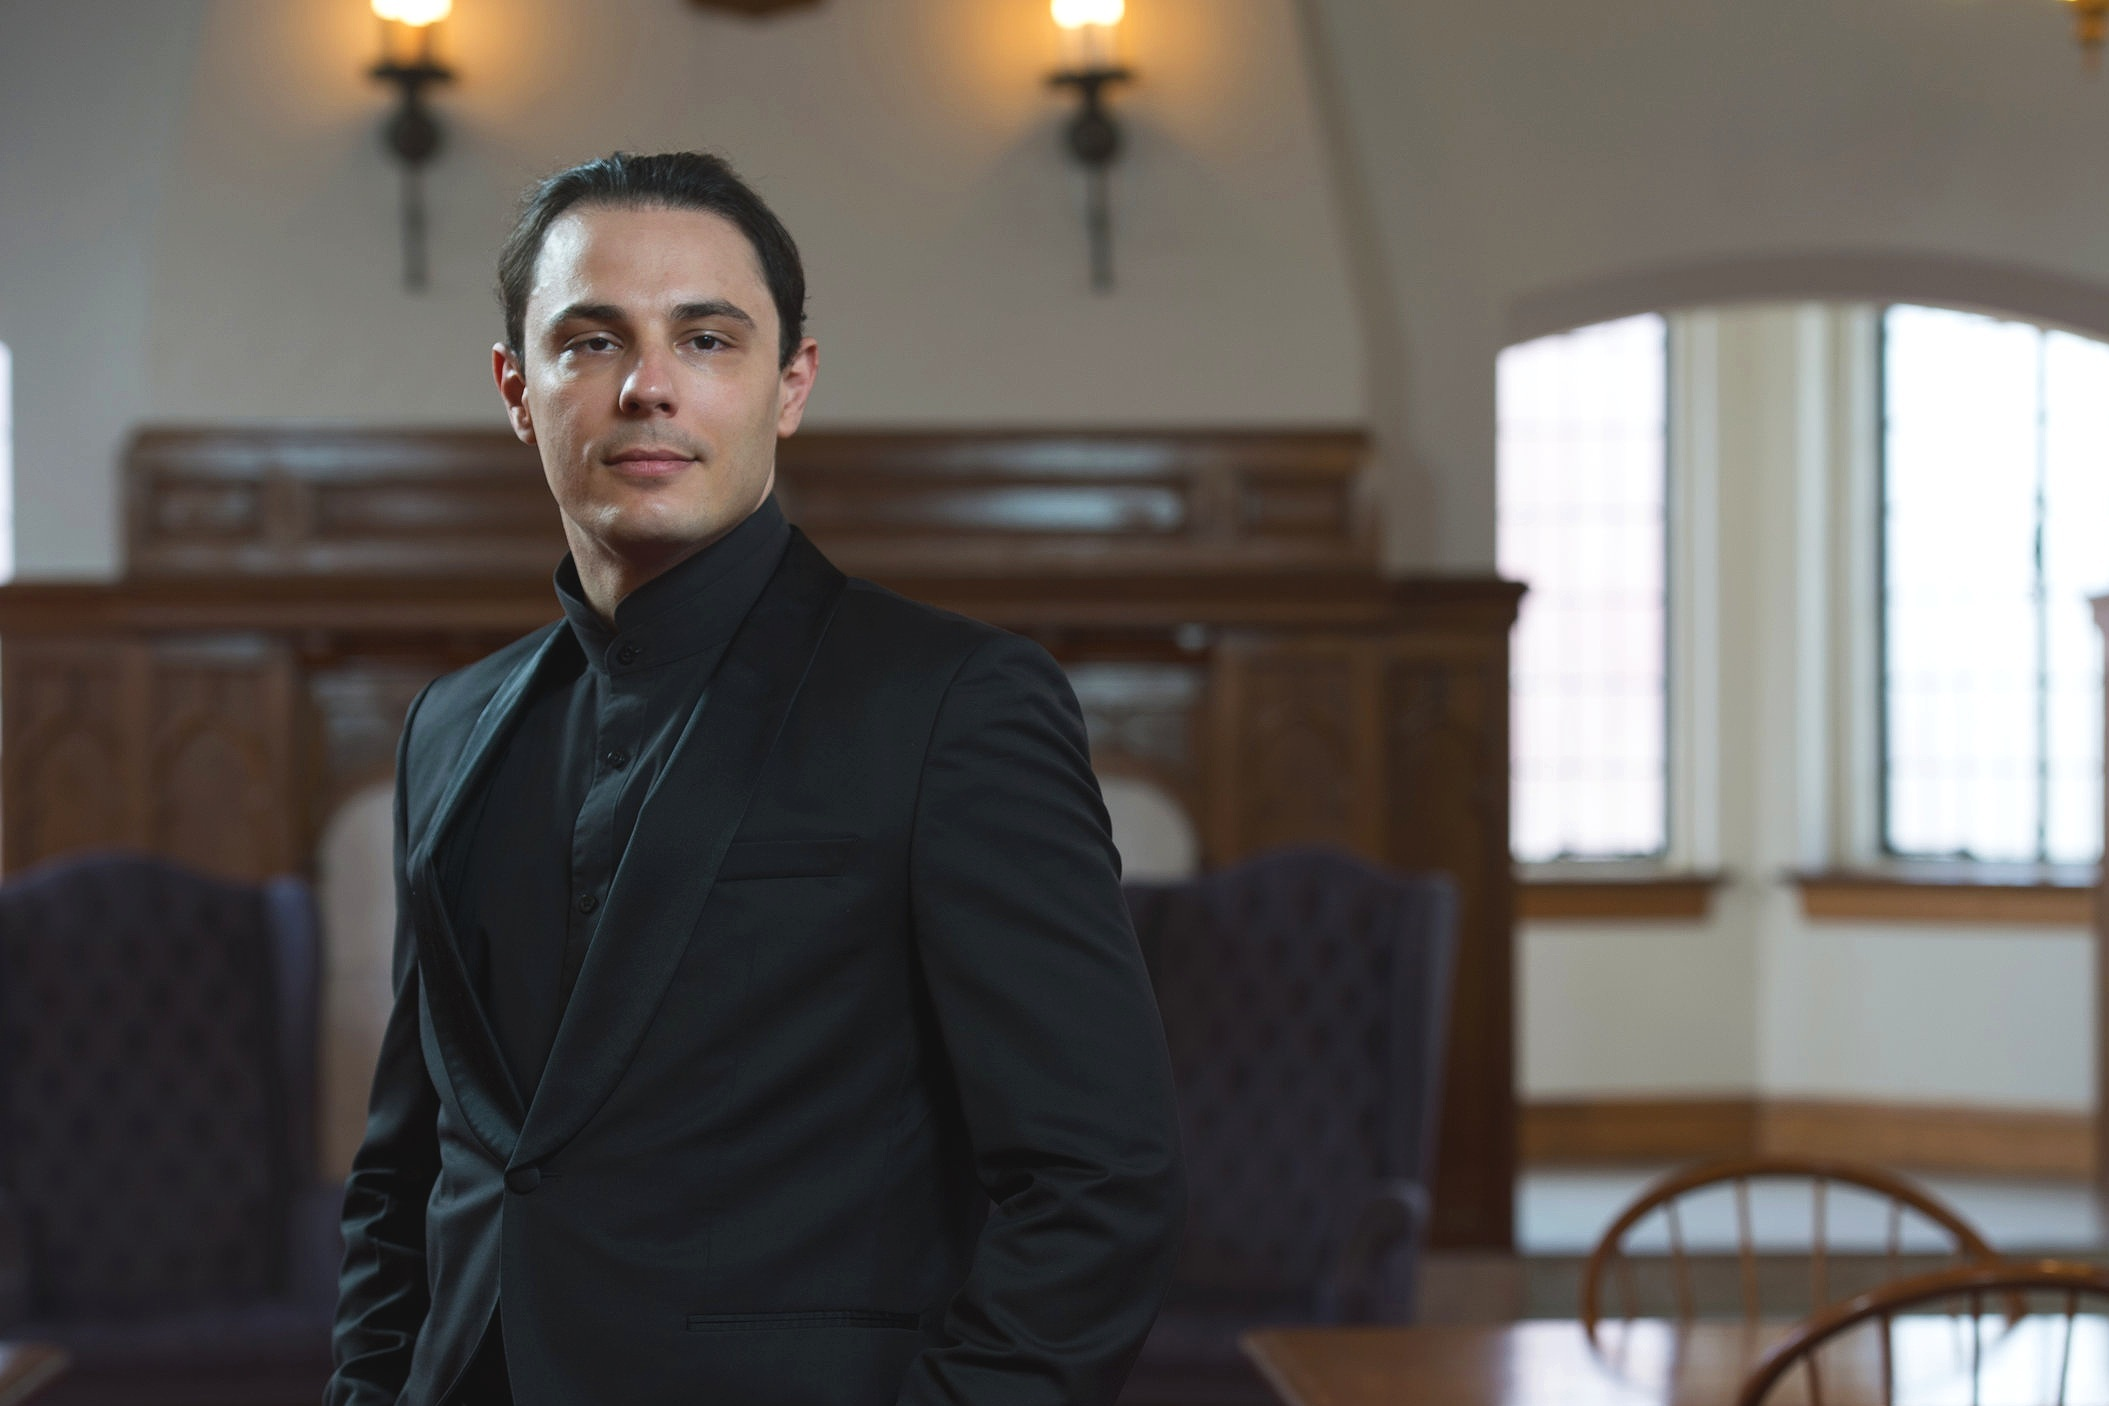 "Vlad Vizireanu began his career at the University of California studying music history. He has gone on to participate in music all around the world. He studied medieval chant at the University of Texas before going on to earn a masters in orchestral conducting at the Indiana University Jacobs School of Music. Finally he earned a Doctorate of Musical Arts at Arizona State University in both orchestral and opera conducting. Another candidate with a wonderful pedigree, Vlad has conducted orchestras such as the London Symphony Orchestra, Cadaques Symphony, and at the Enescu Festival in Bucharest.  Vlad is currently a Lecturer in Music at University of California in Santa Barbara. Recently he was Music Director at North Shore Symphony Orchestra in Plainview, NY, and conductor at New West Symphony Harmony Project Intermediate Orchestra in Ventura County, CA. The Harmony Project was geared at inspiring young children to have a lifelong appreciation for the arts. In Vlad's own words ""the greater purpose of a music is to bring people closer together."""